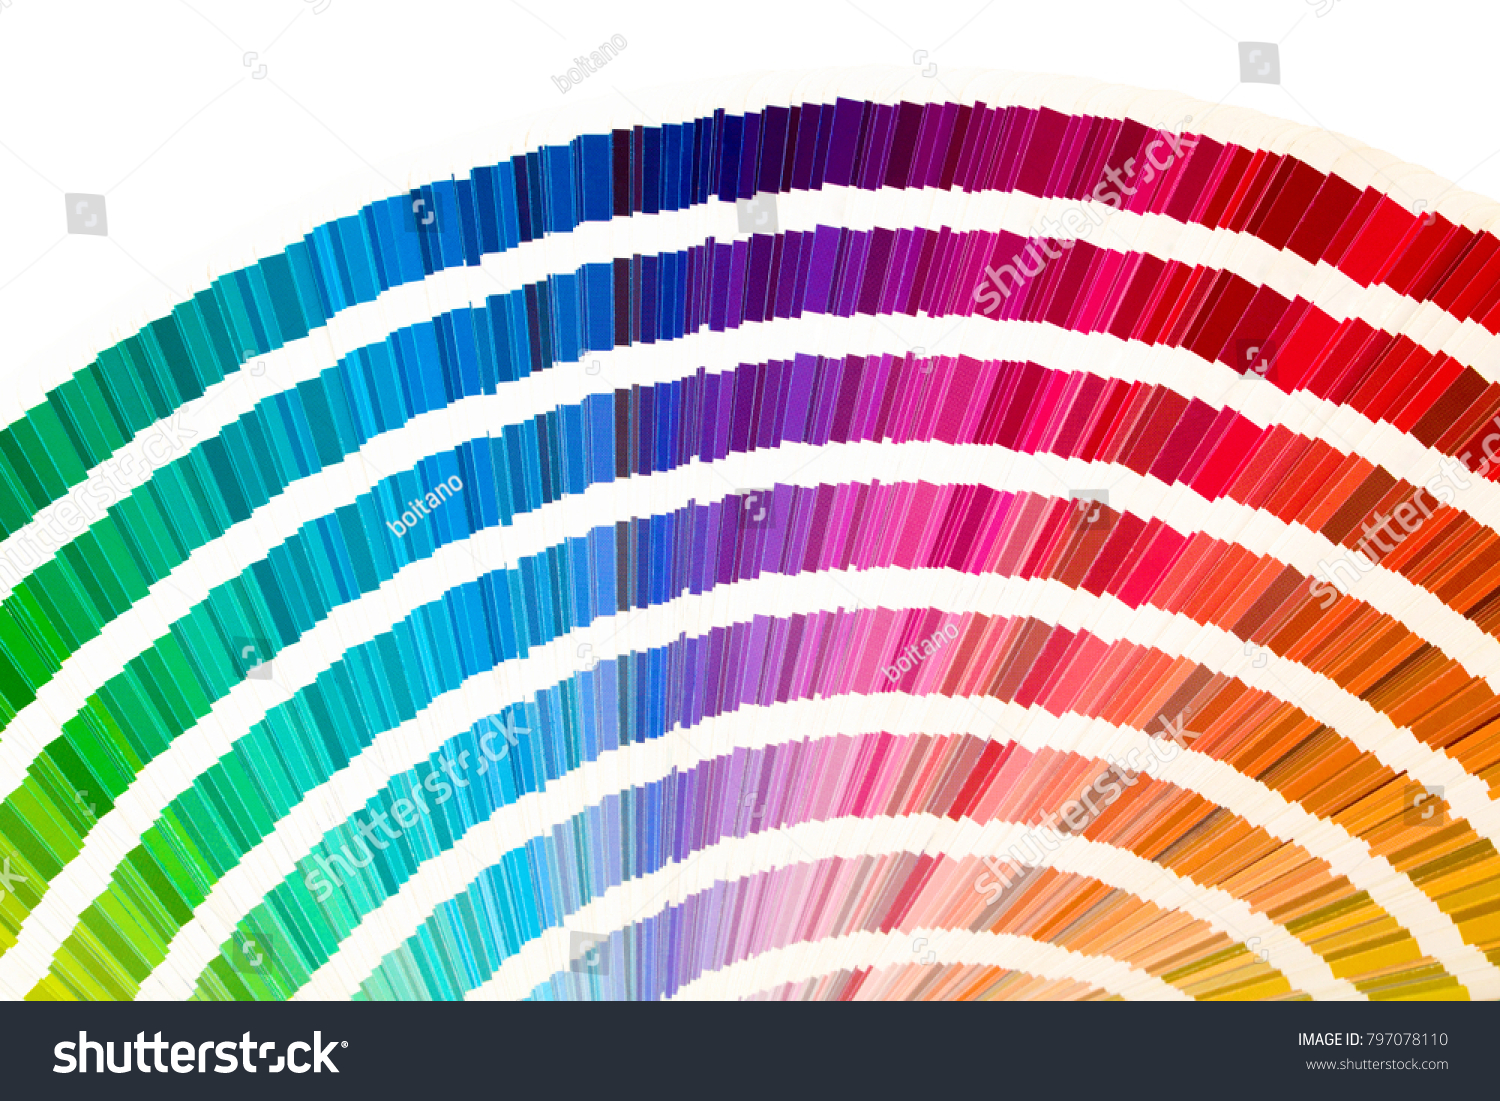 Rainbow sample colors catalogue many shades stock photo 797078110 rainbow sample colors catalogue in many shades of colors or spectrum isolated on white background nvjuhfo Images